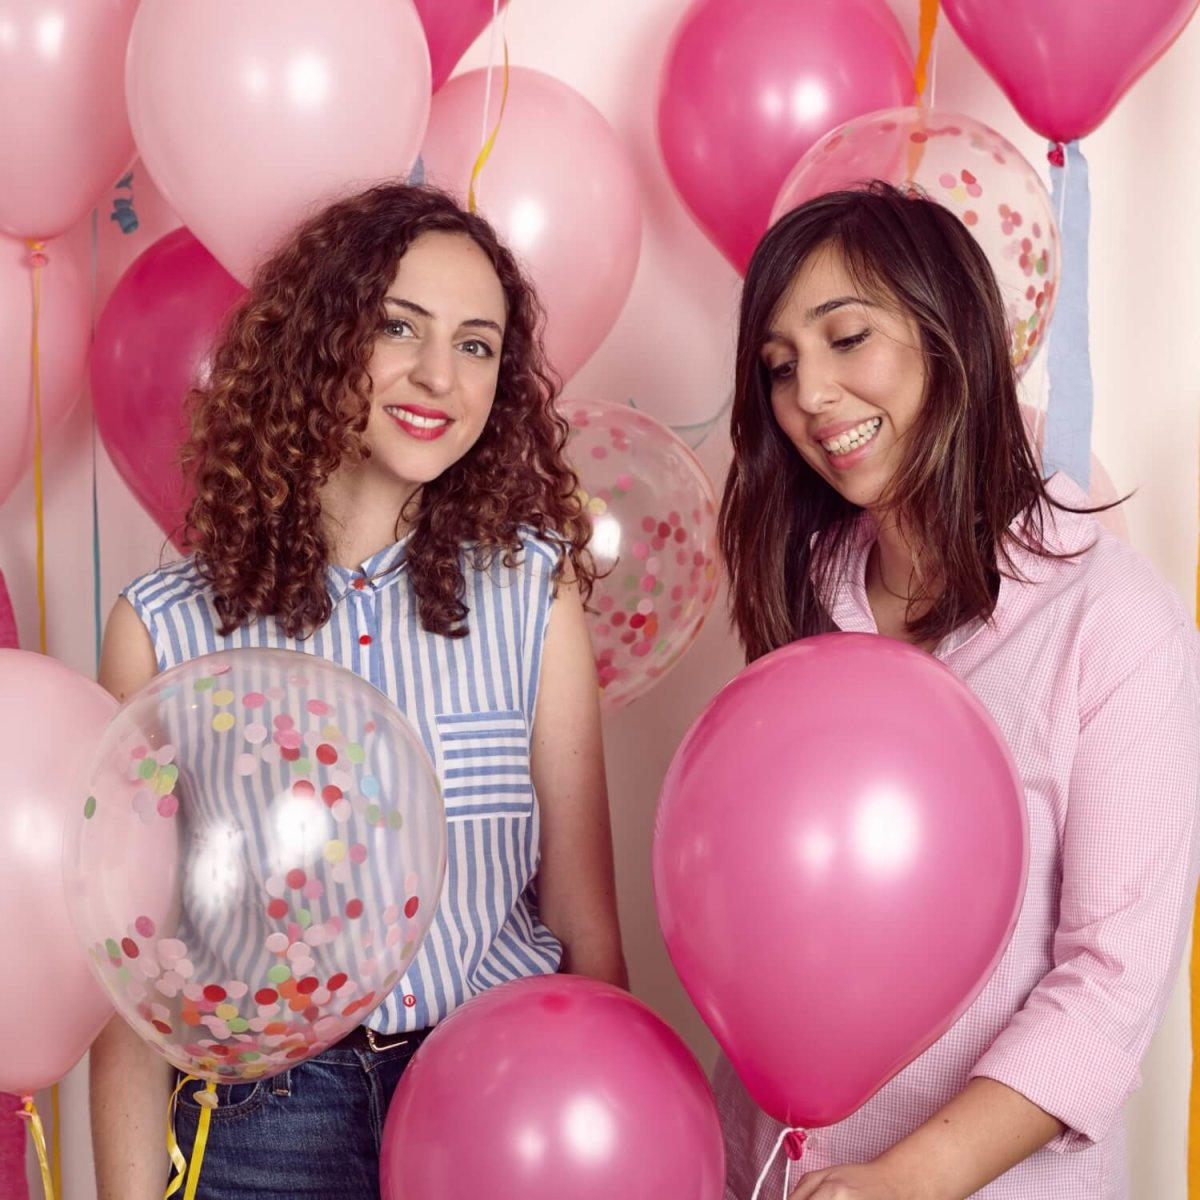 poptails-business-owners-pink-balloons